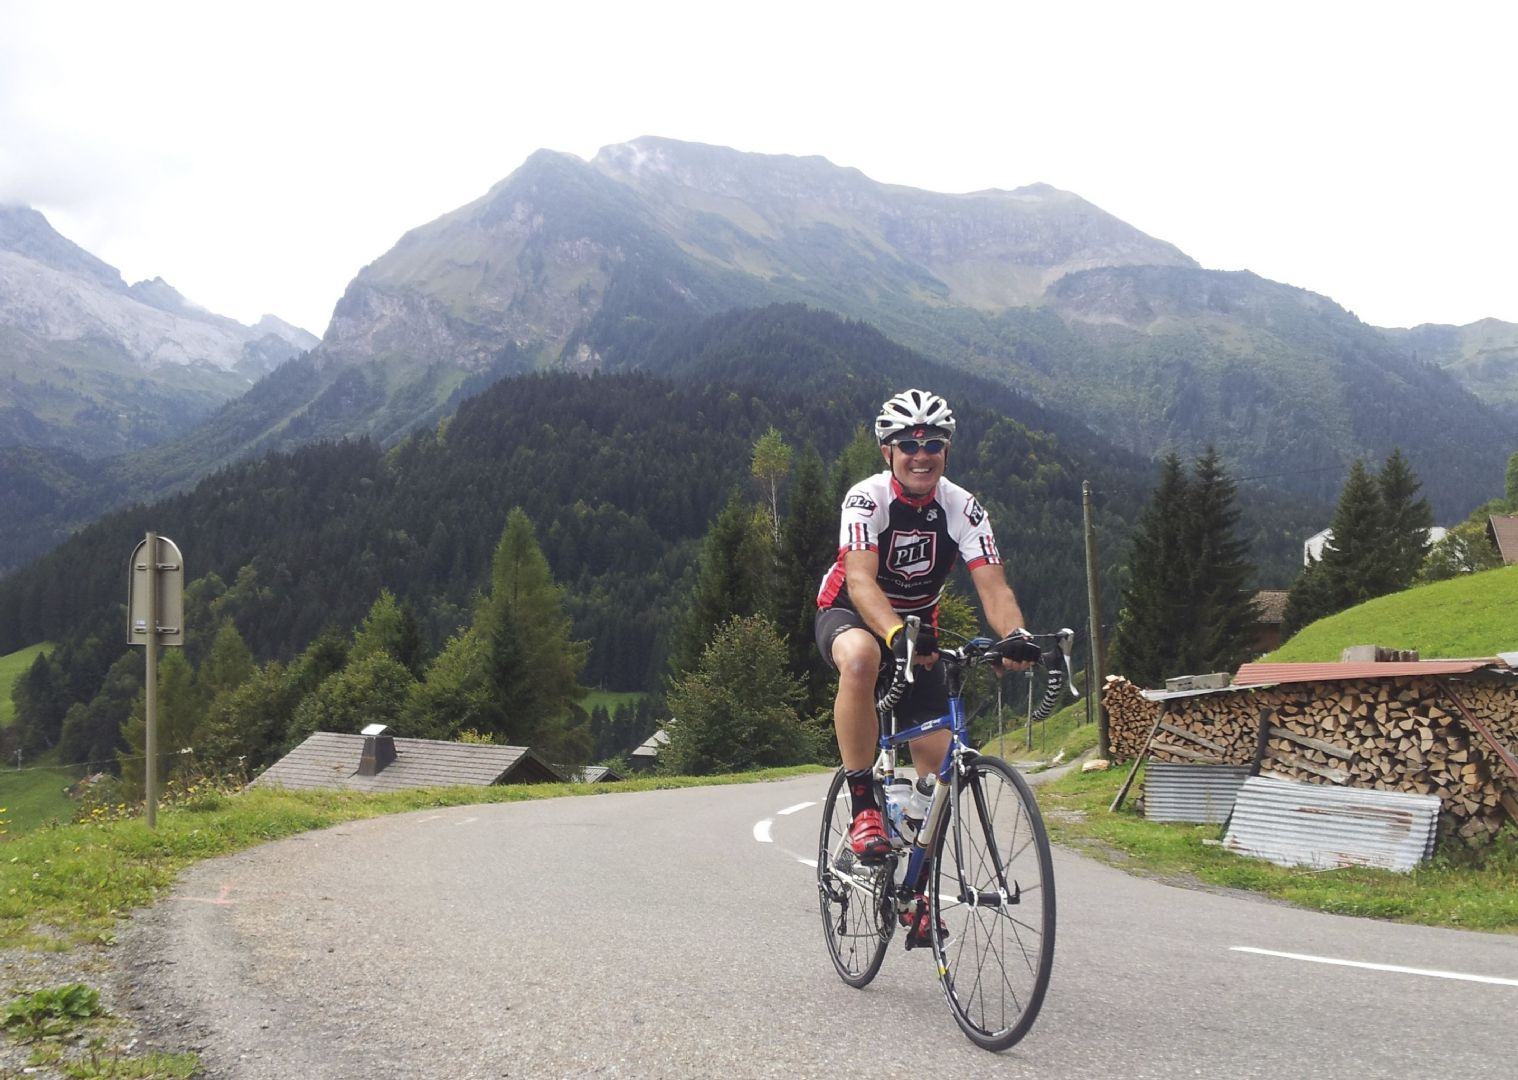 alpine intro 2.jpg - France - Classic Alps Passes - Alpine Introduction - Guided Road Cycling Holiday - Road Cycling